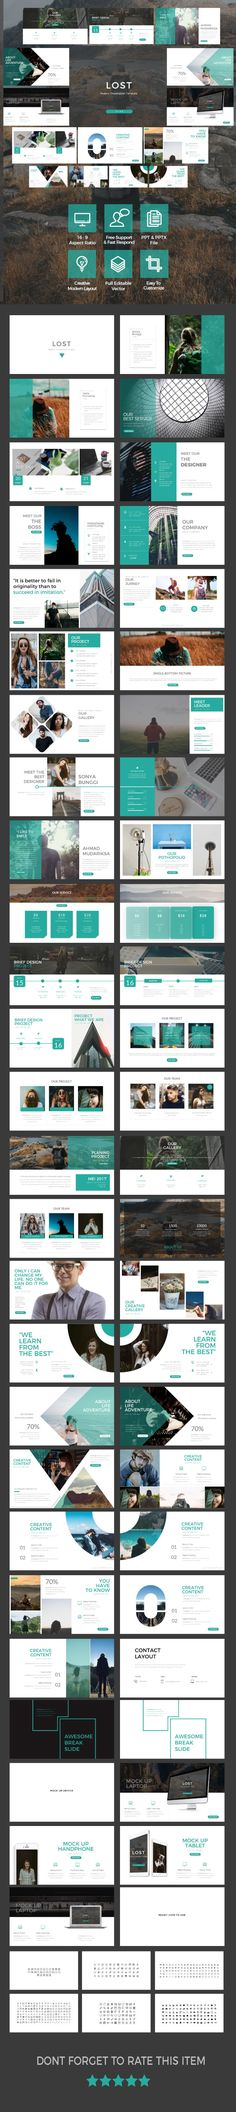 Lost - Multipurpose Presentation Template - #Business #PowerPoint Templates Download here:  https://graphicriver.net/item/lost-multipurpose-presentation-template/19746829?ref=alena994